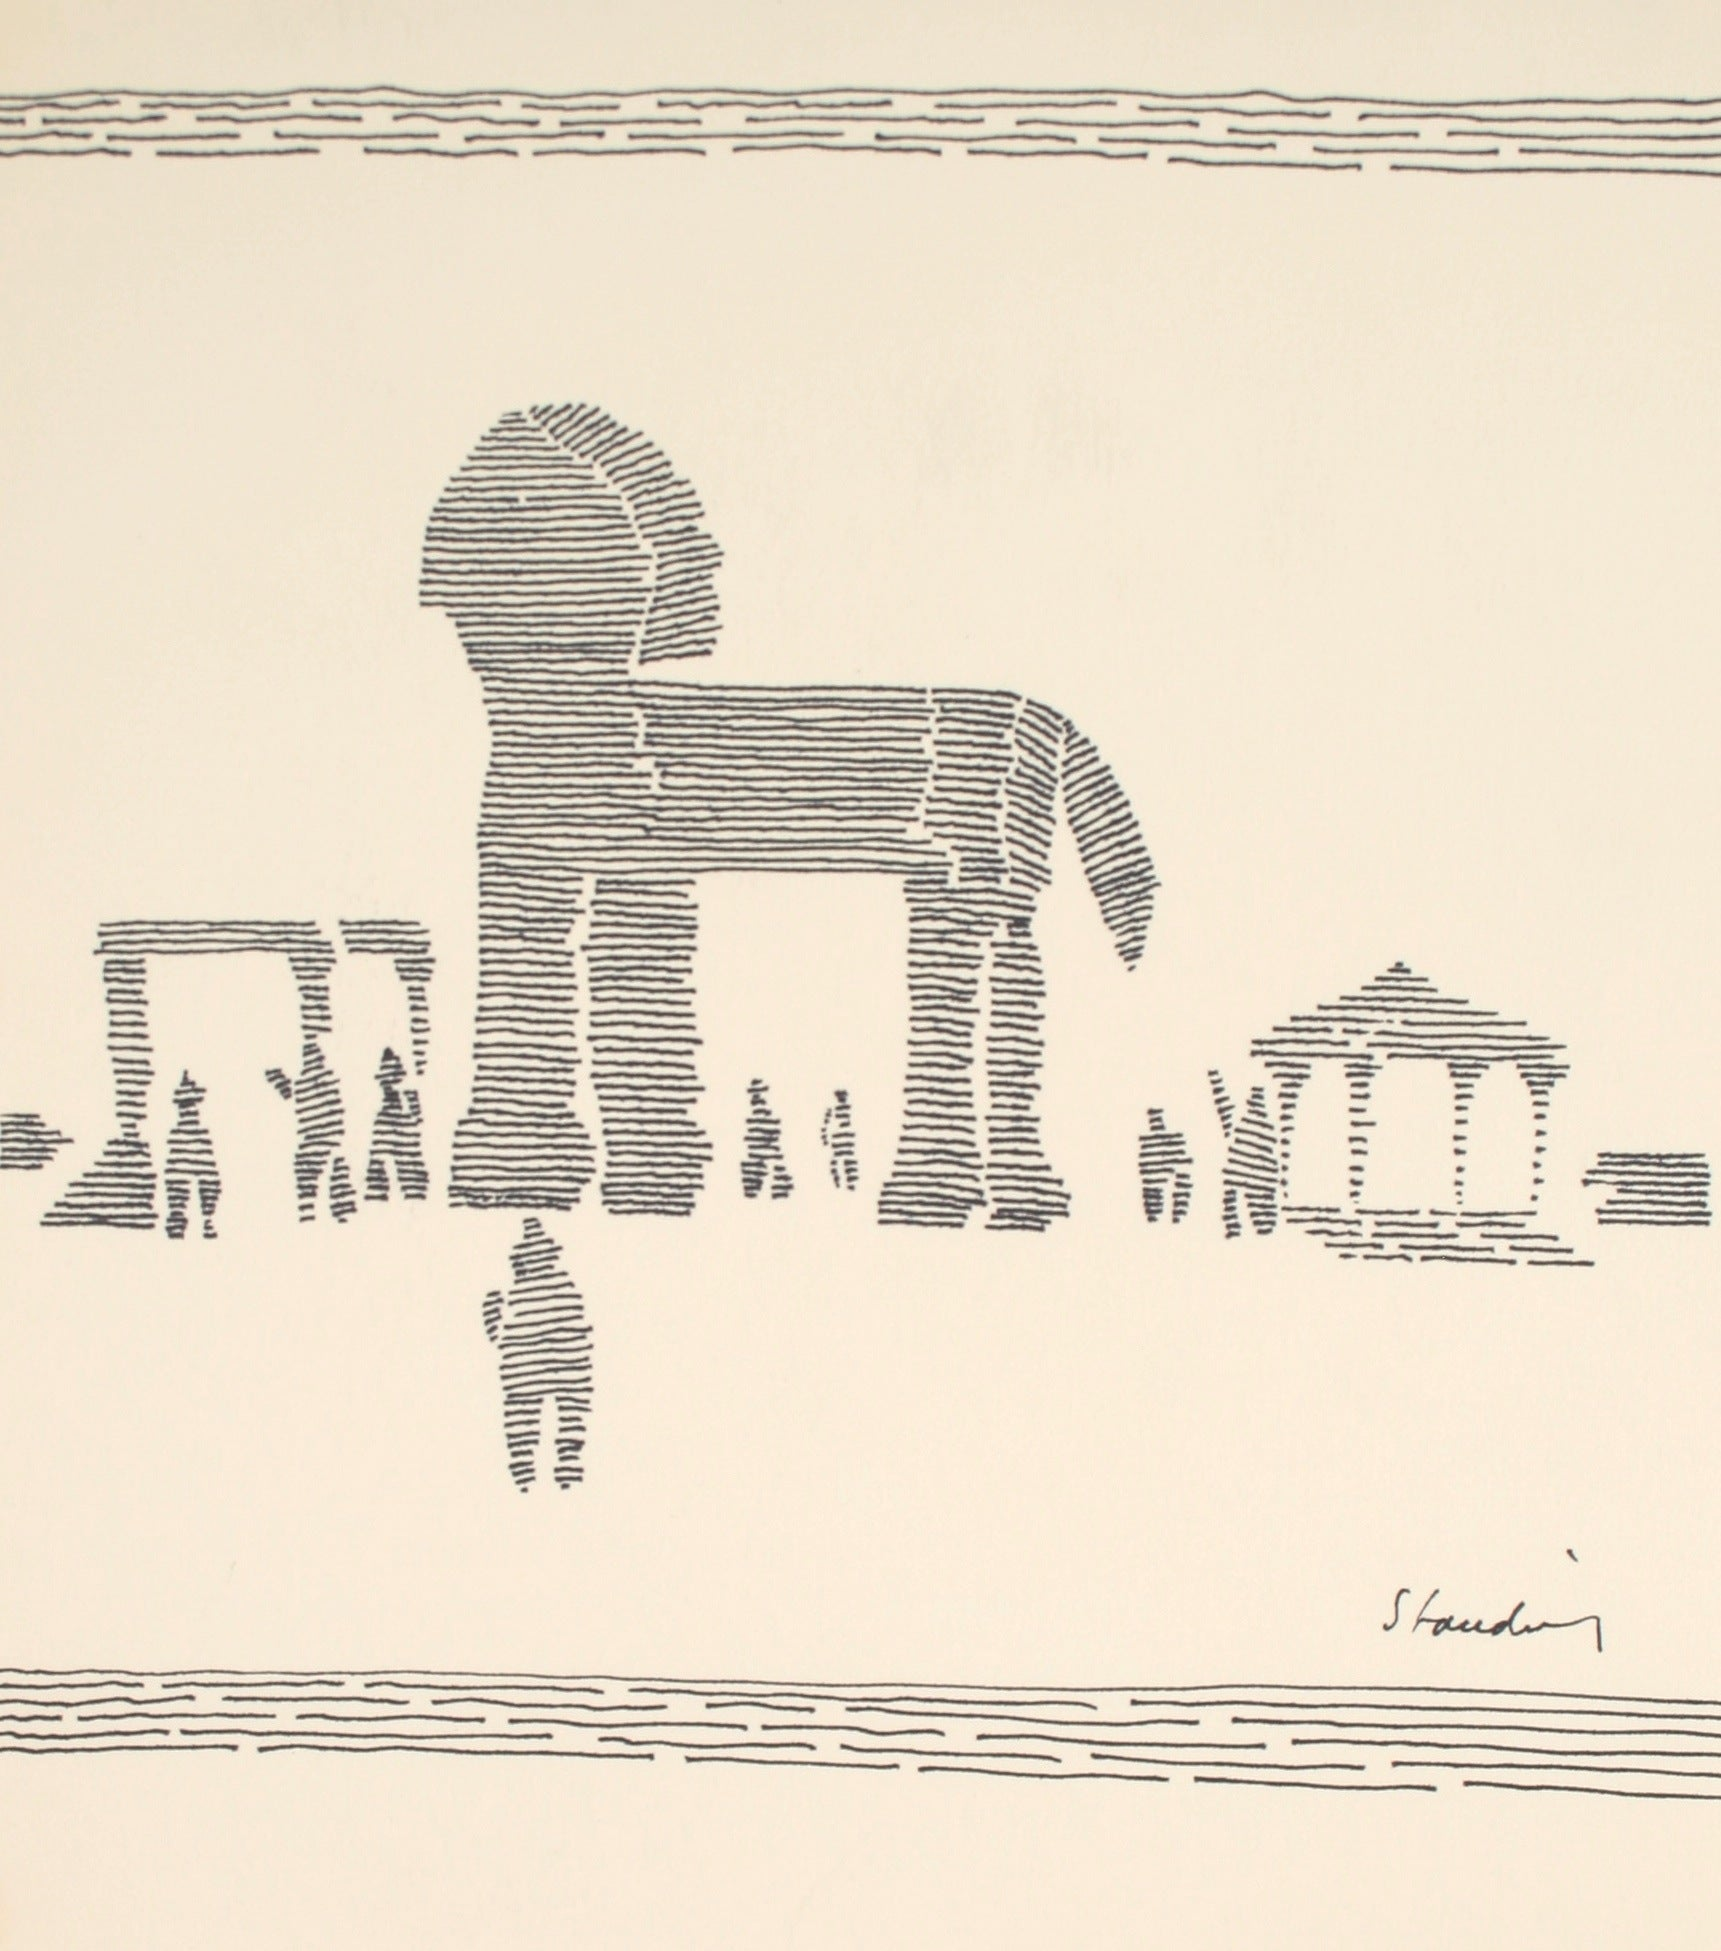 Ink on Paper Line Drawing, 20th Century